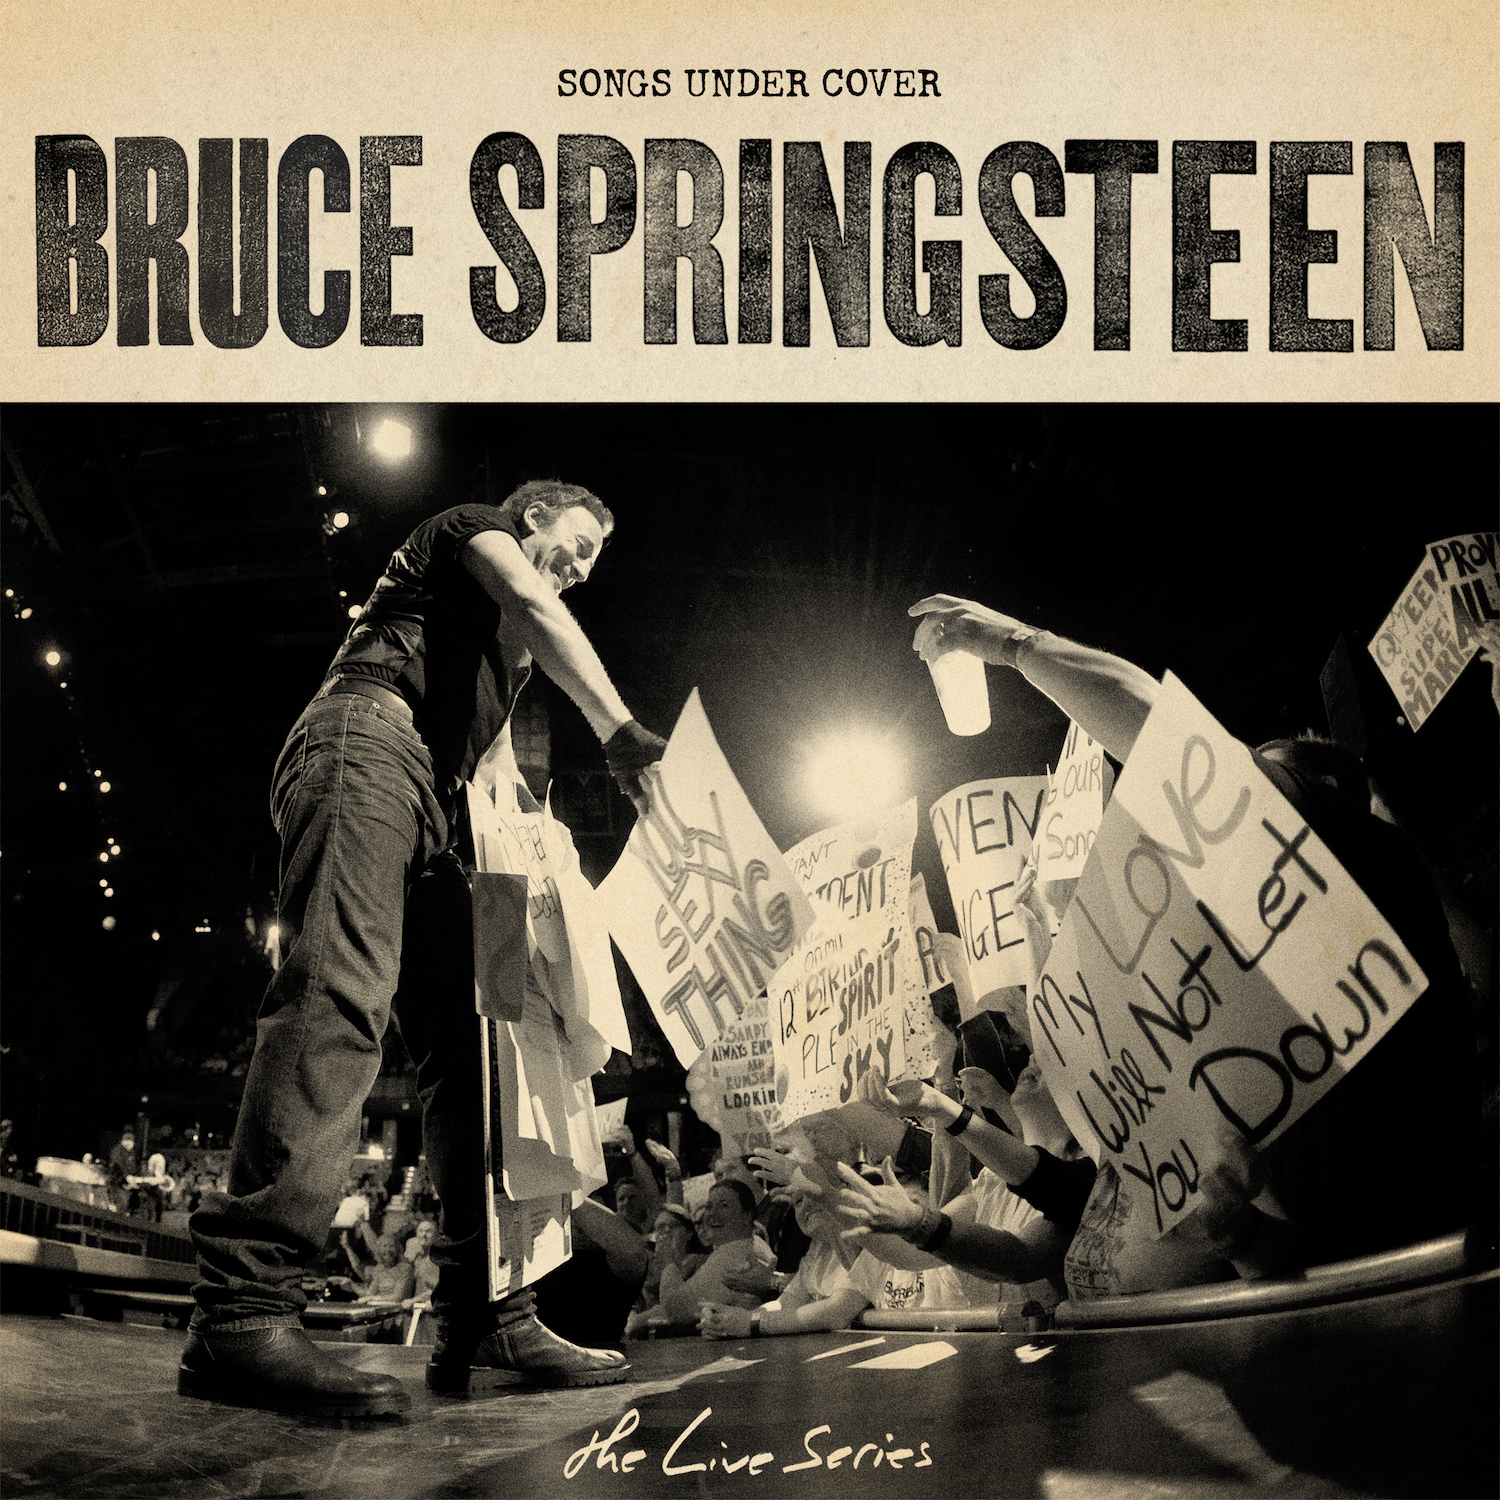 """Ranking the 15 Tracks on Springsteen's New """"Songs Under Cover"""" Playlist"""